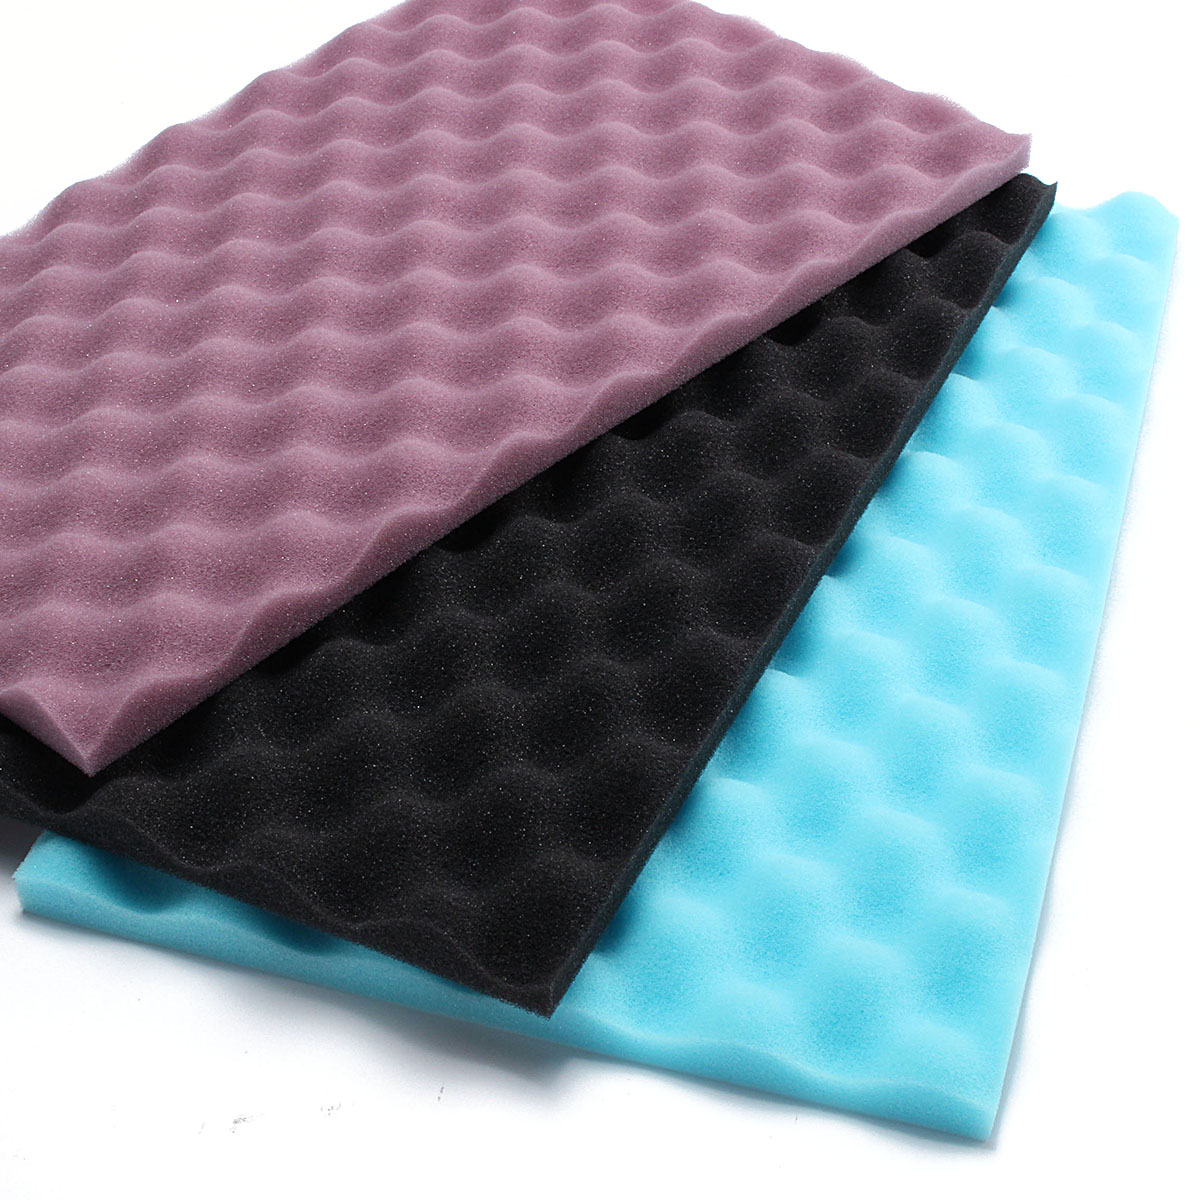 3Pcs 17x11 Inch Aquarium Media Fish Tank Filter Foam Sponge Pads 20mm Thickness